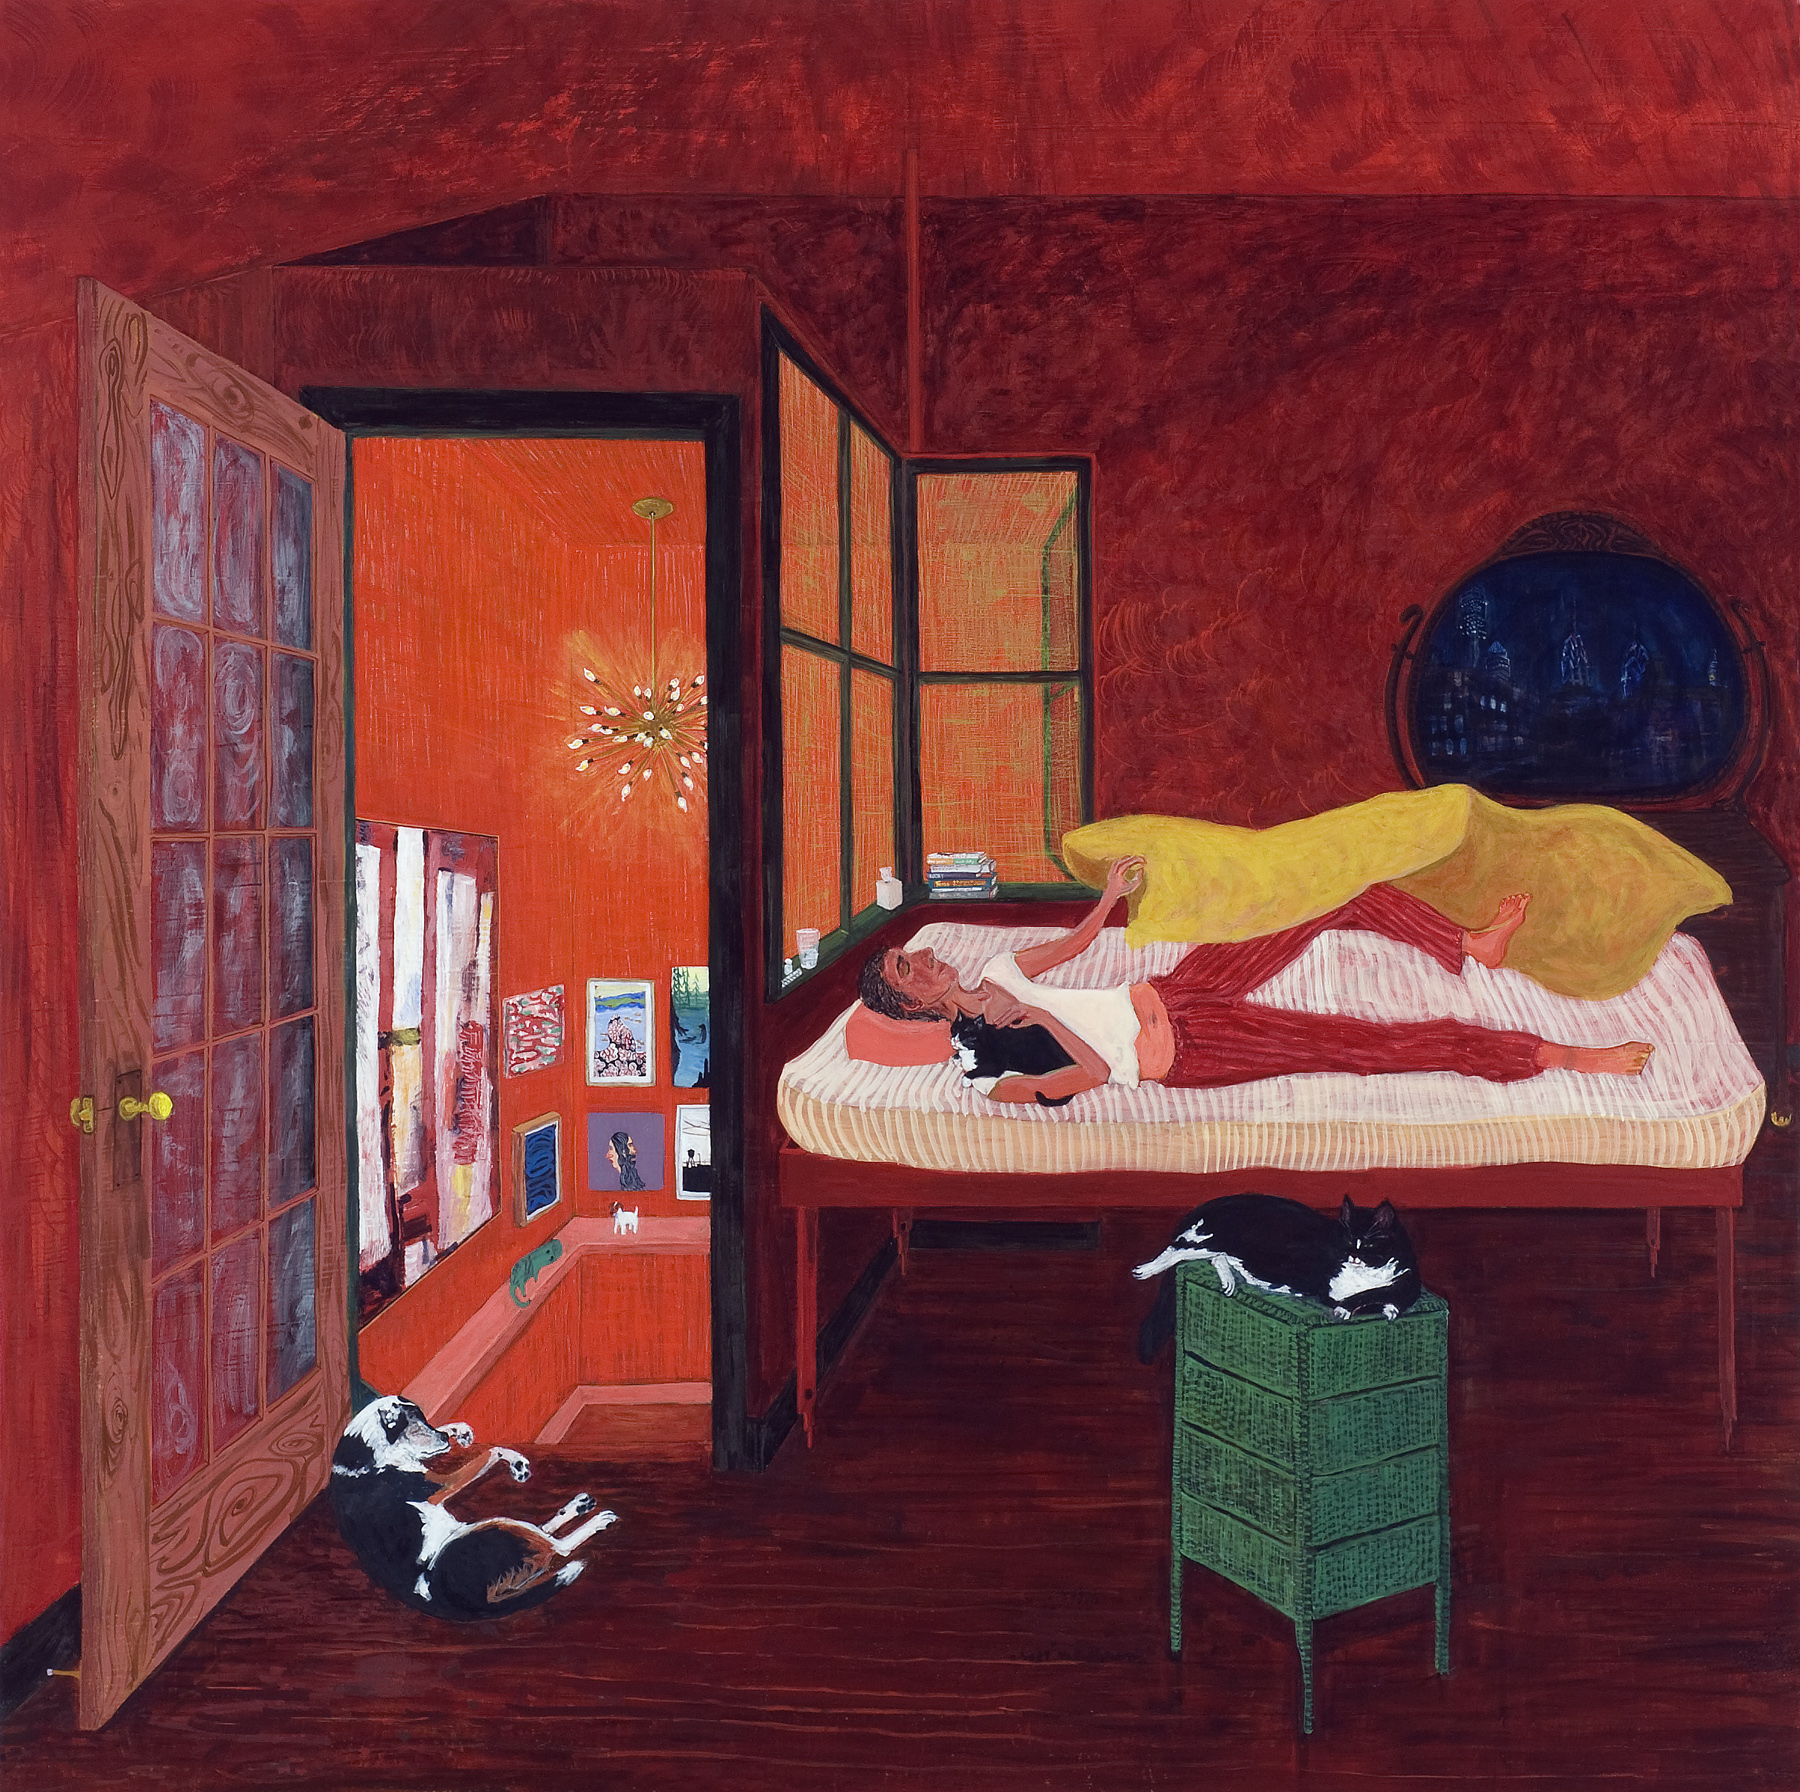 Night , 2008, egg tempera on linen, 48 x 48 inches. Courtesy of Locks Gallery